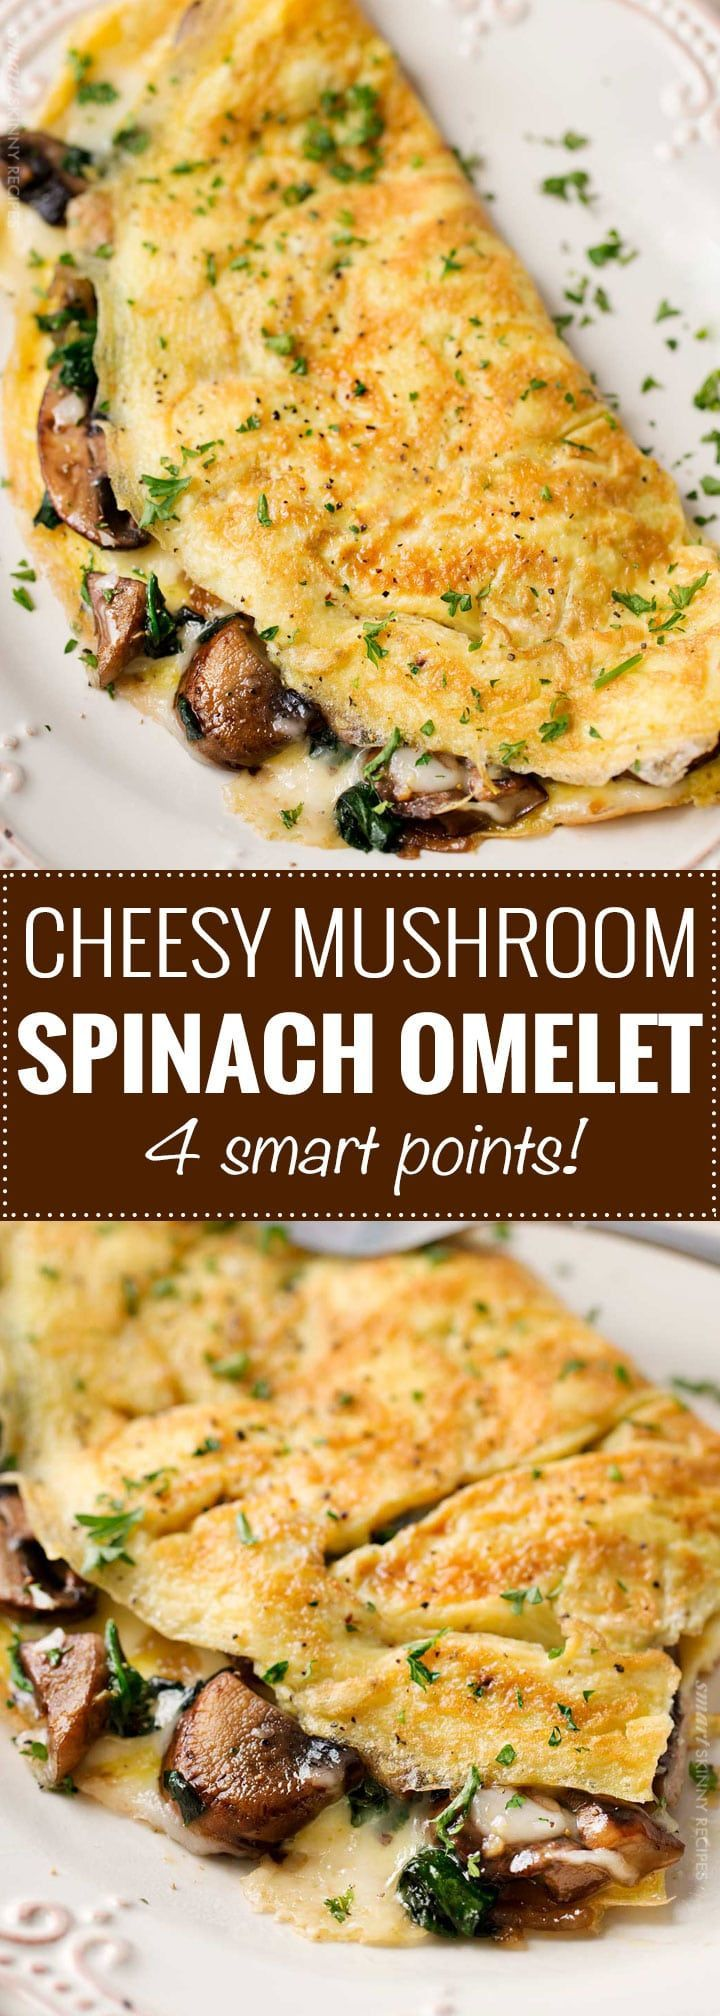 This easy browned omelet is filled with sautéed mushrooms, onions, wilted spinach, and gooey Gruyere cheese! | #omelet #breakfast #brunch #omelette #eggrecipe #breakfastrecipe #weightwatchers #freestyle #smartpoints